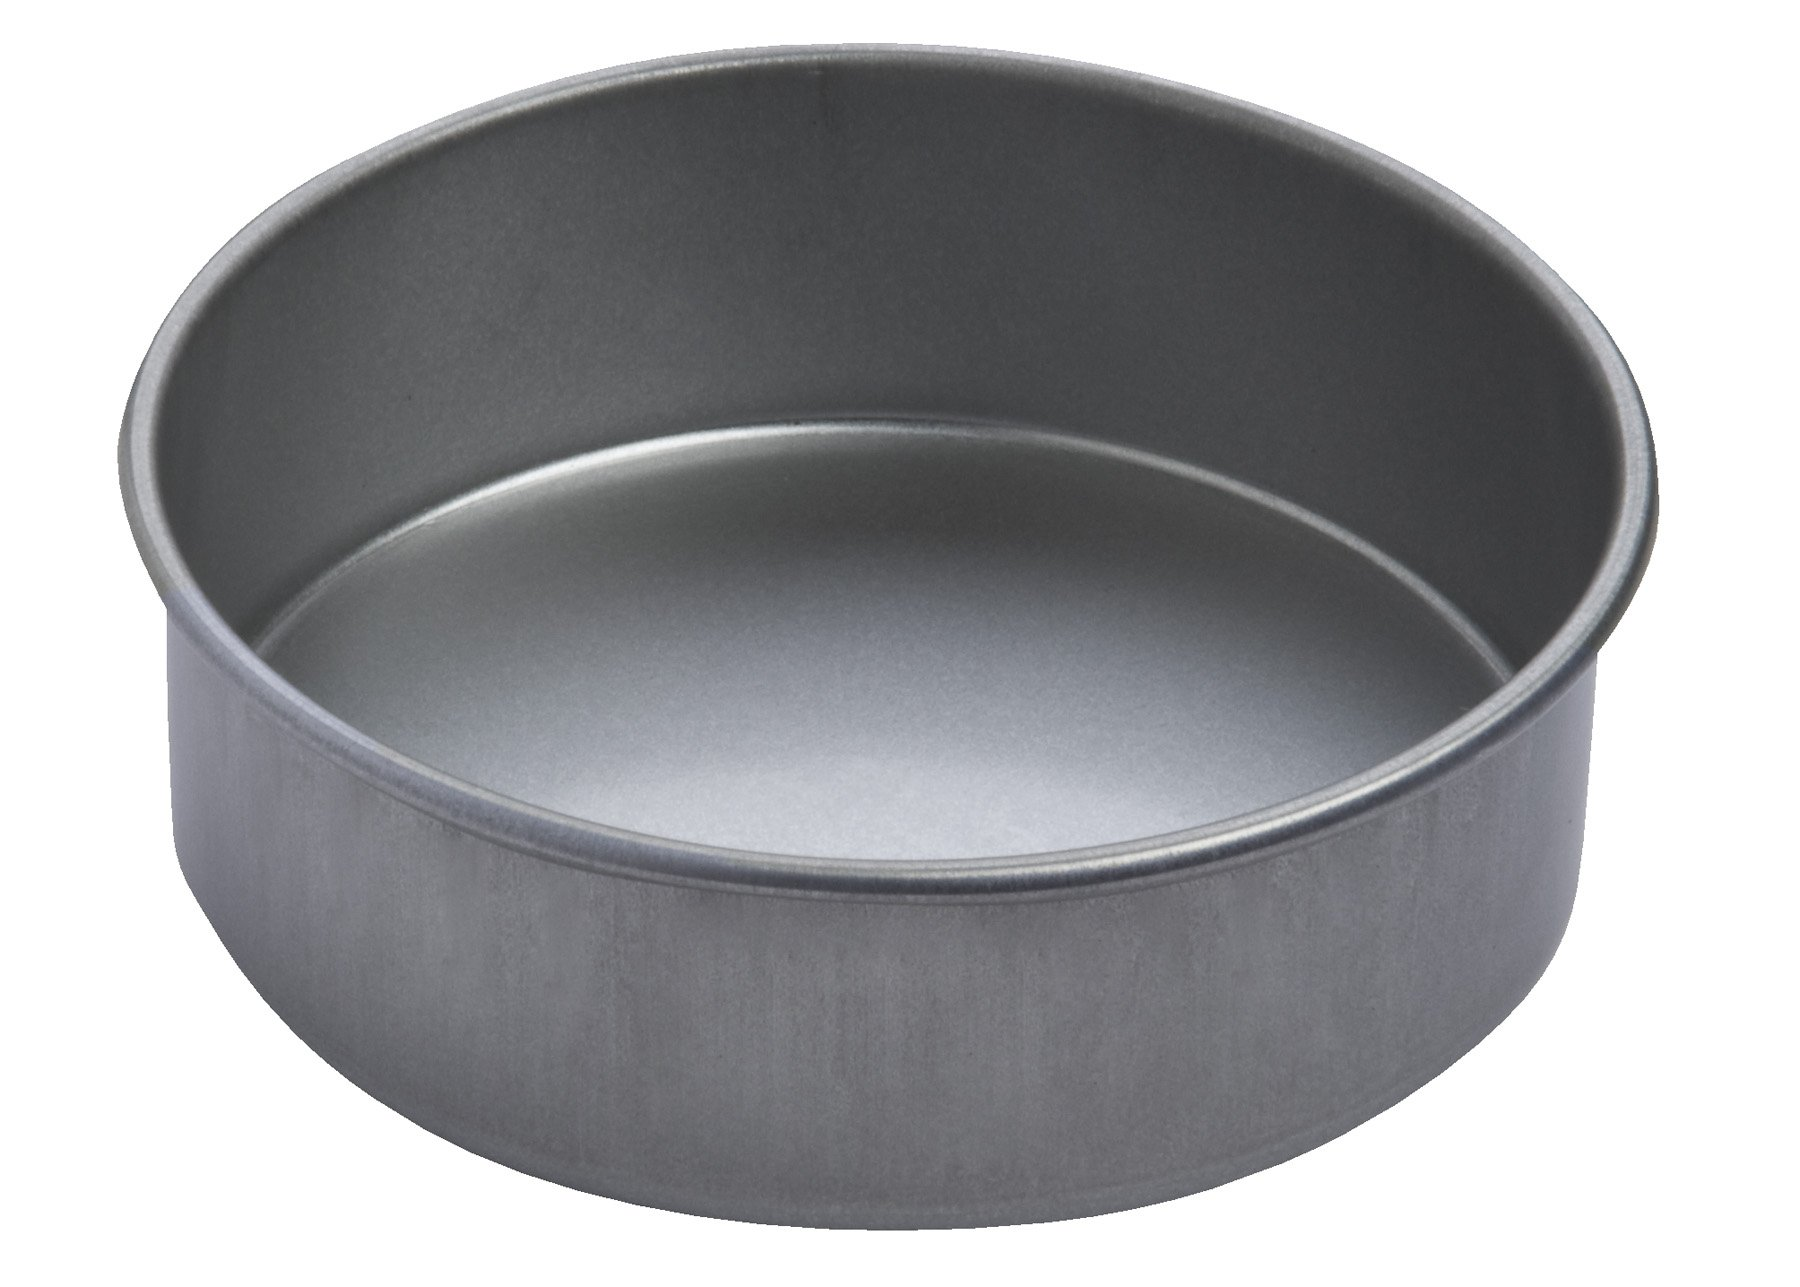 Focus Foodservice Commercial Bakeware 6-Inch Round Cake Pan